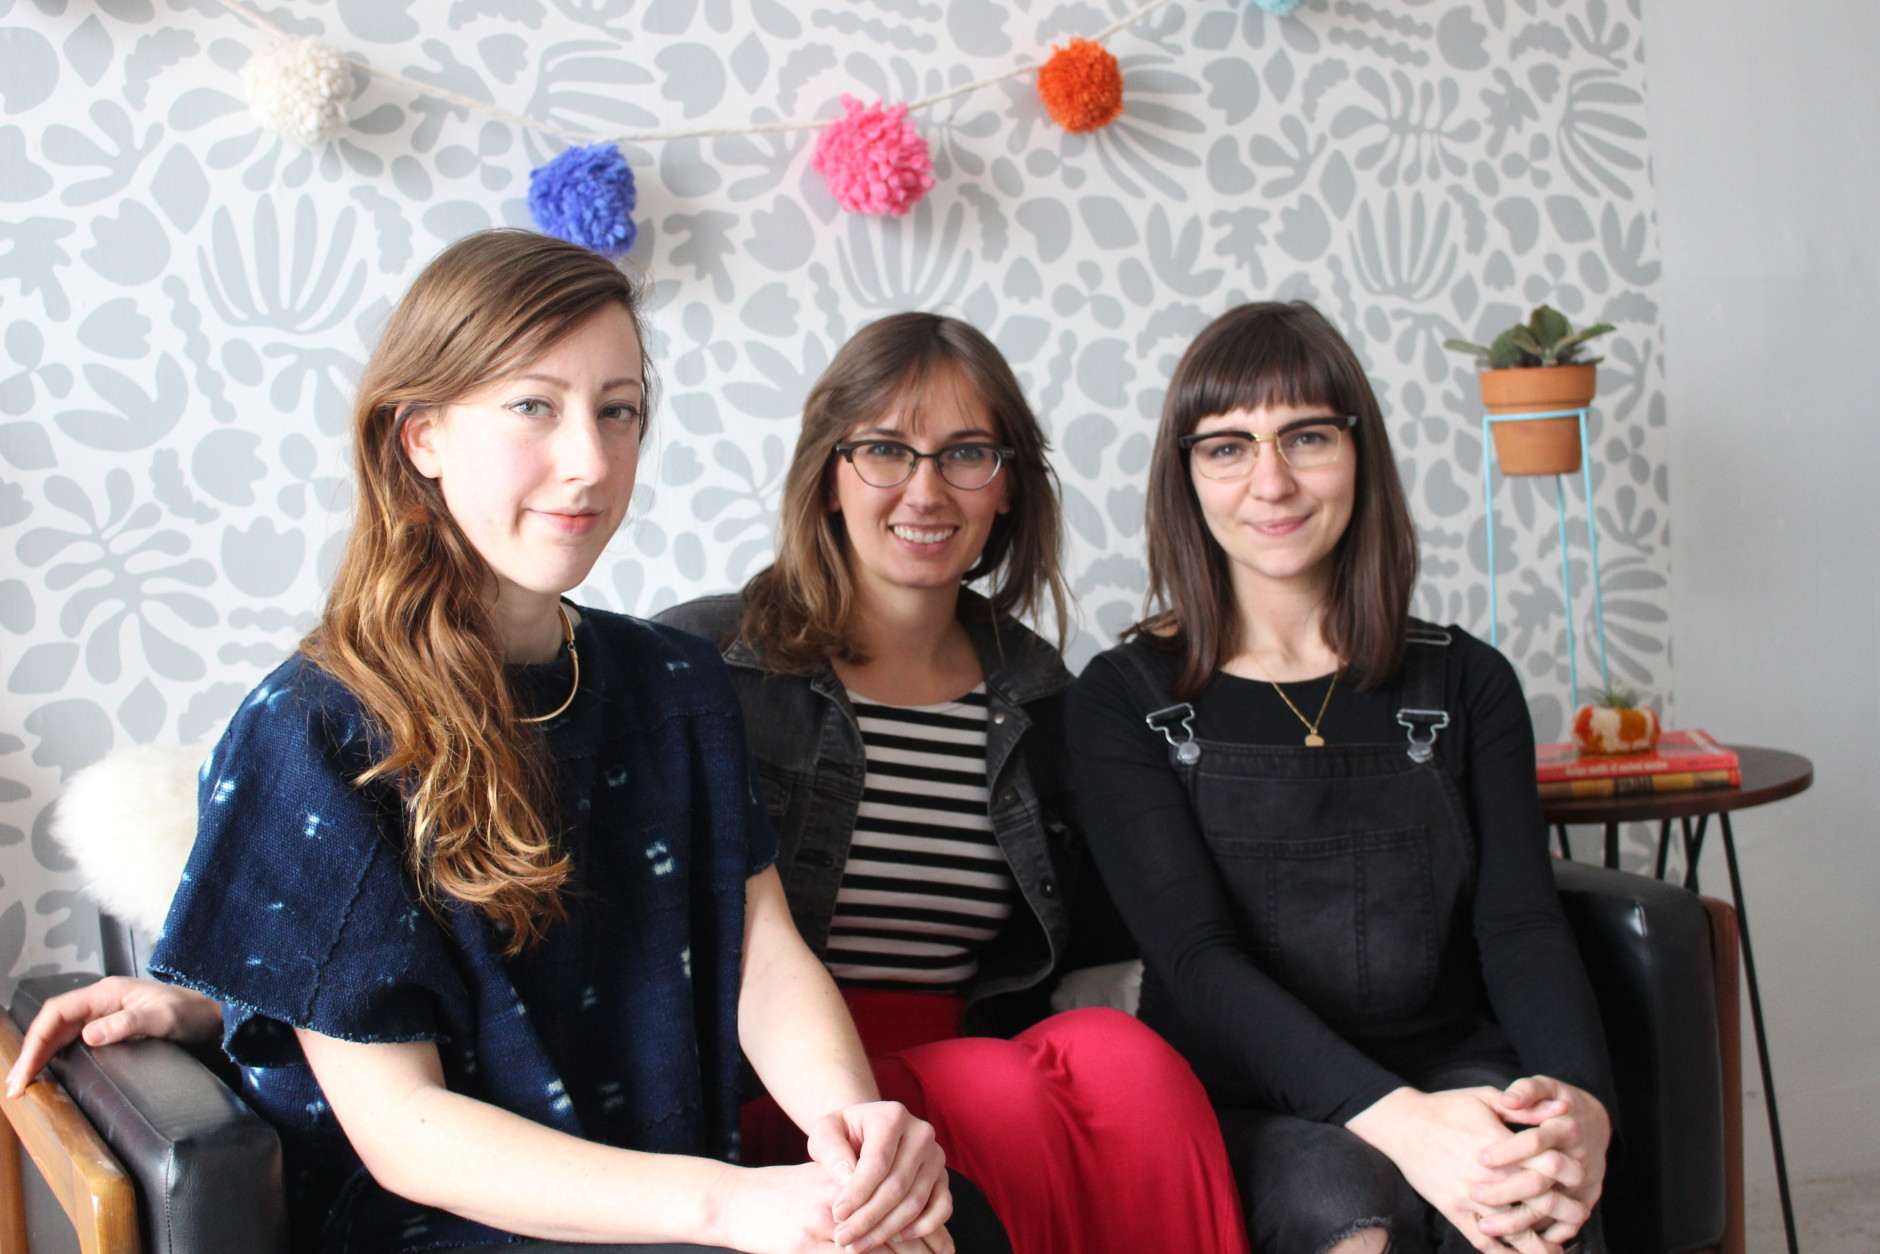 If you're pinning pictures of cute craft tutorials on pinterest but you can't seem to get started on them yourself, the ladies of The Lemon Bowl are here to help. Holley Simmons, Linny Giffen and Katheryn Zaremba are three local artists that took their hobbies and turned them into a business. (WTOP/Dana Gooley)